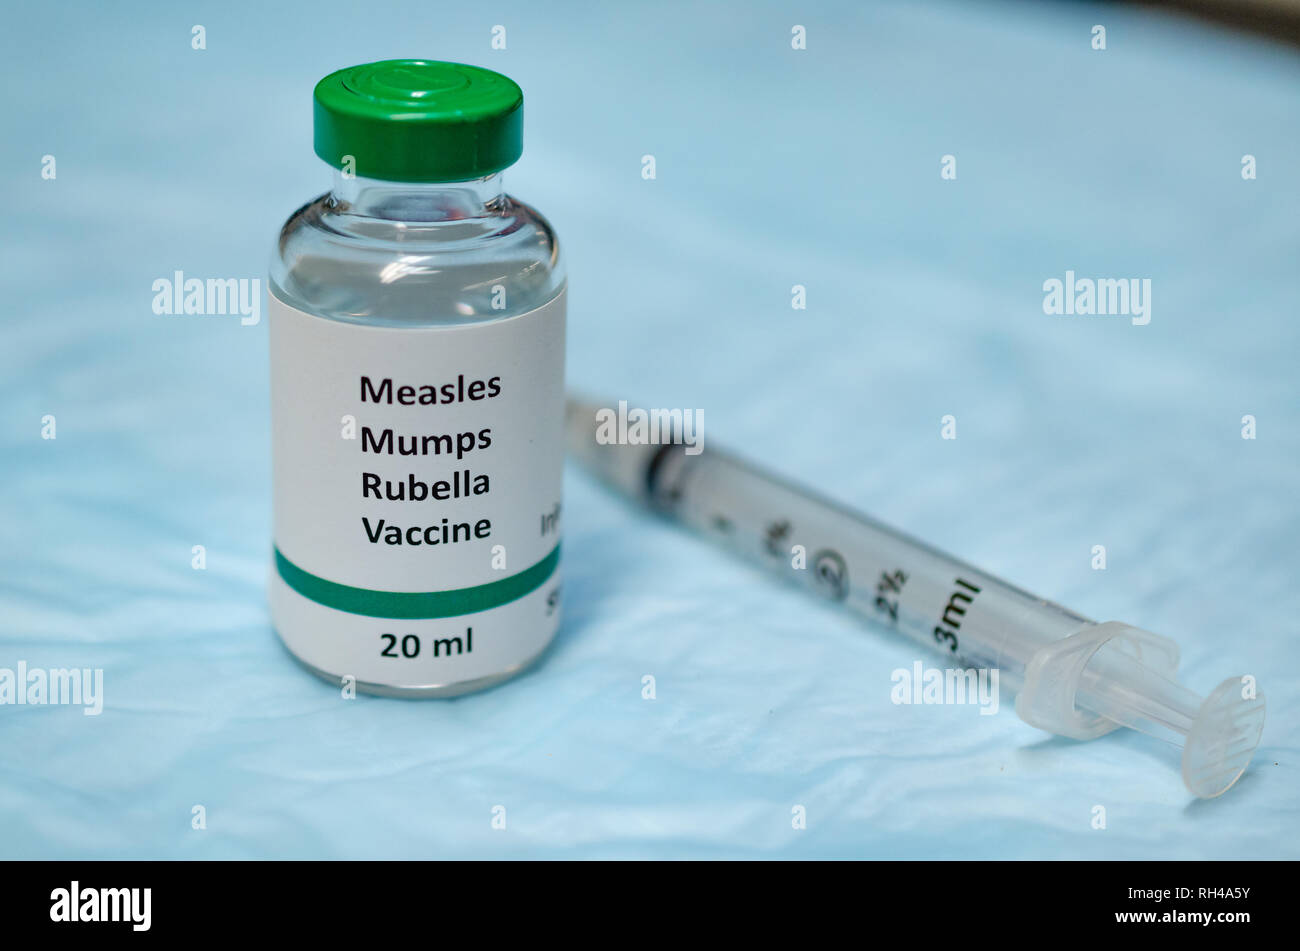 Measles, mumps and rubella combined vaccine vial with injection syringe - Stock Image